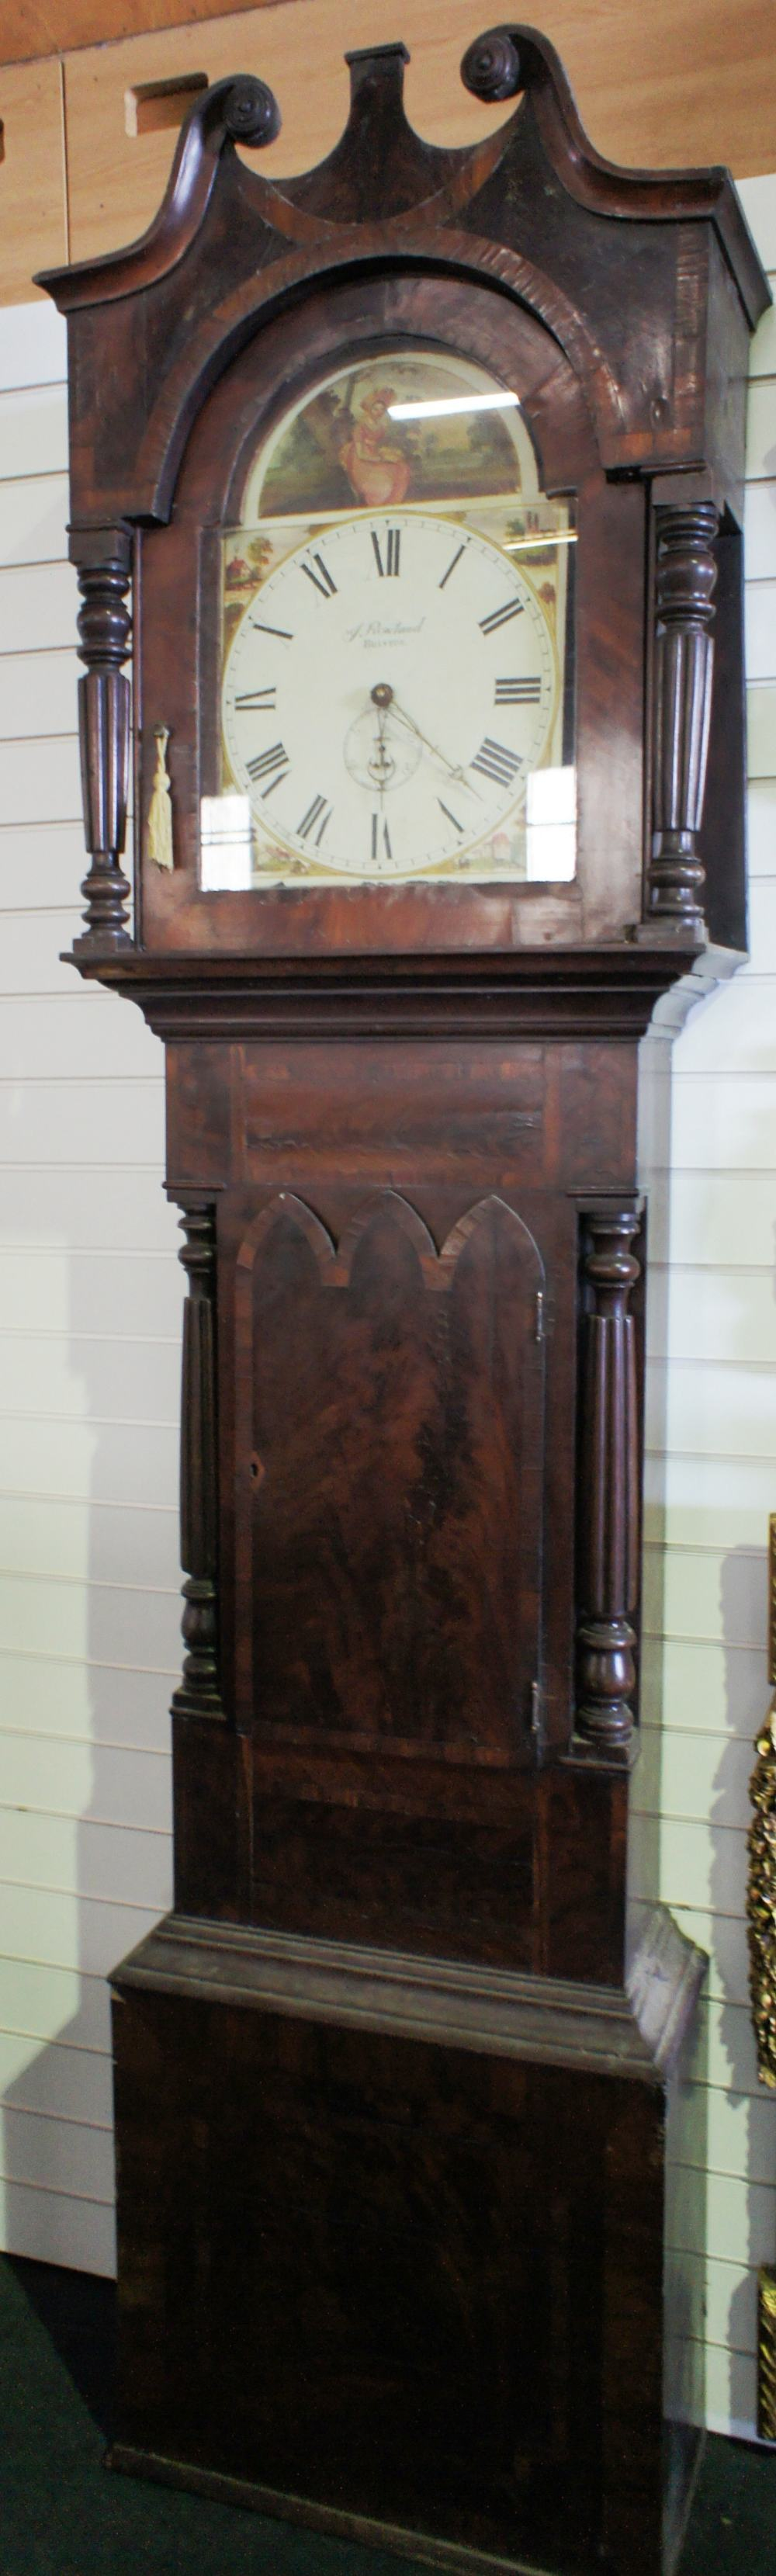 Lot 614 - NV- An inlaid mahogany cased grandfather clock with swan neck cresting, a painted face with a 30